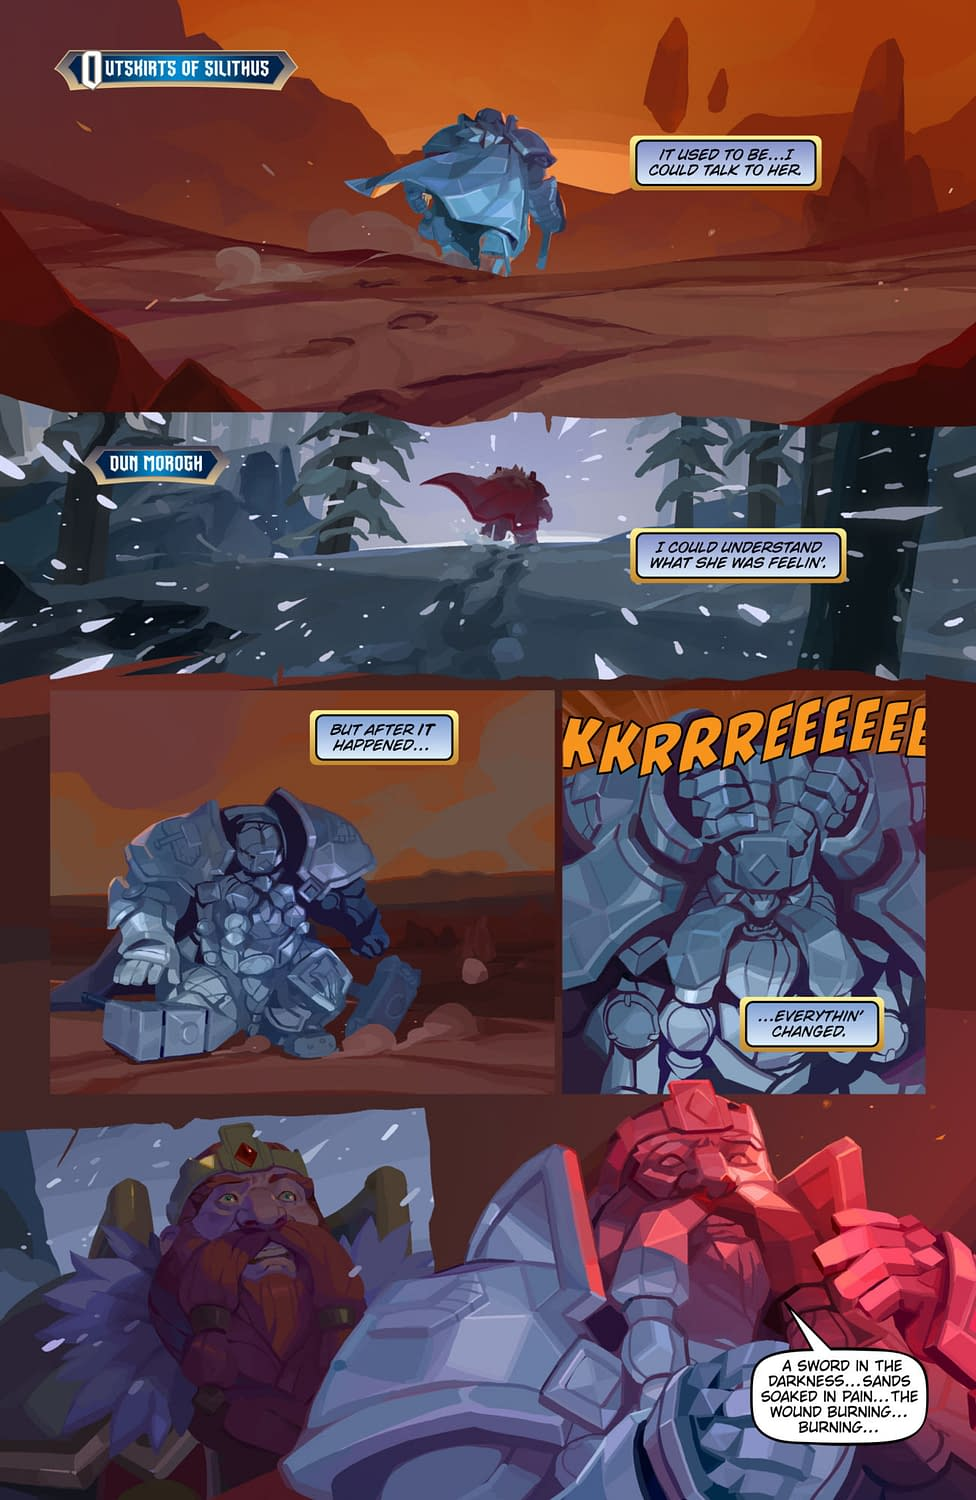 Blizzard Reveals First Pages from the World of Warcraft Comic, Plus a Writer Q&A